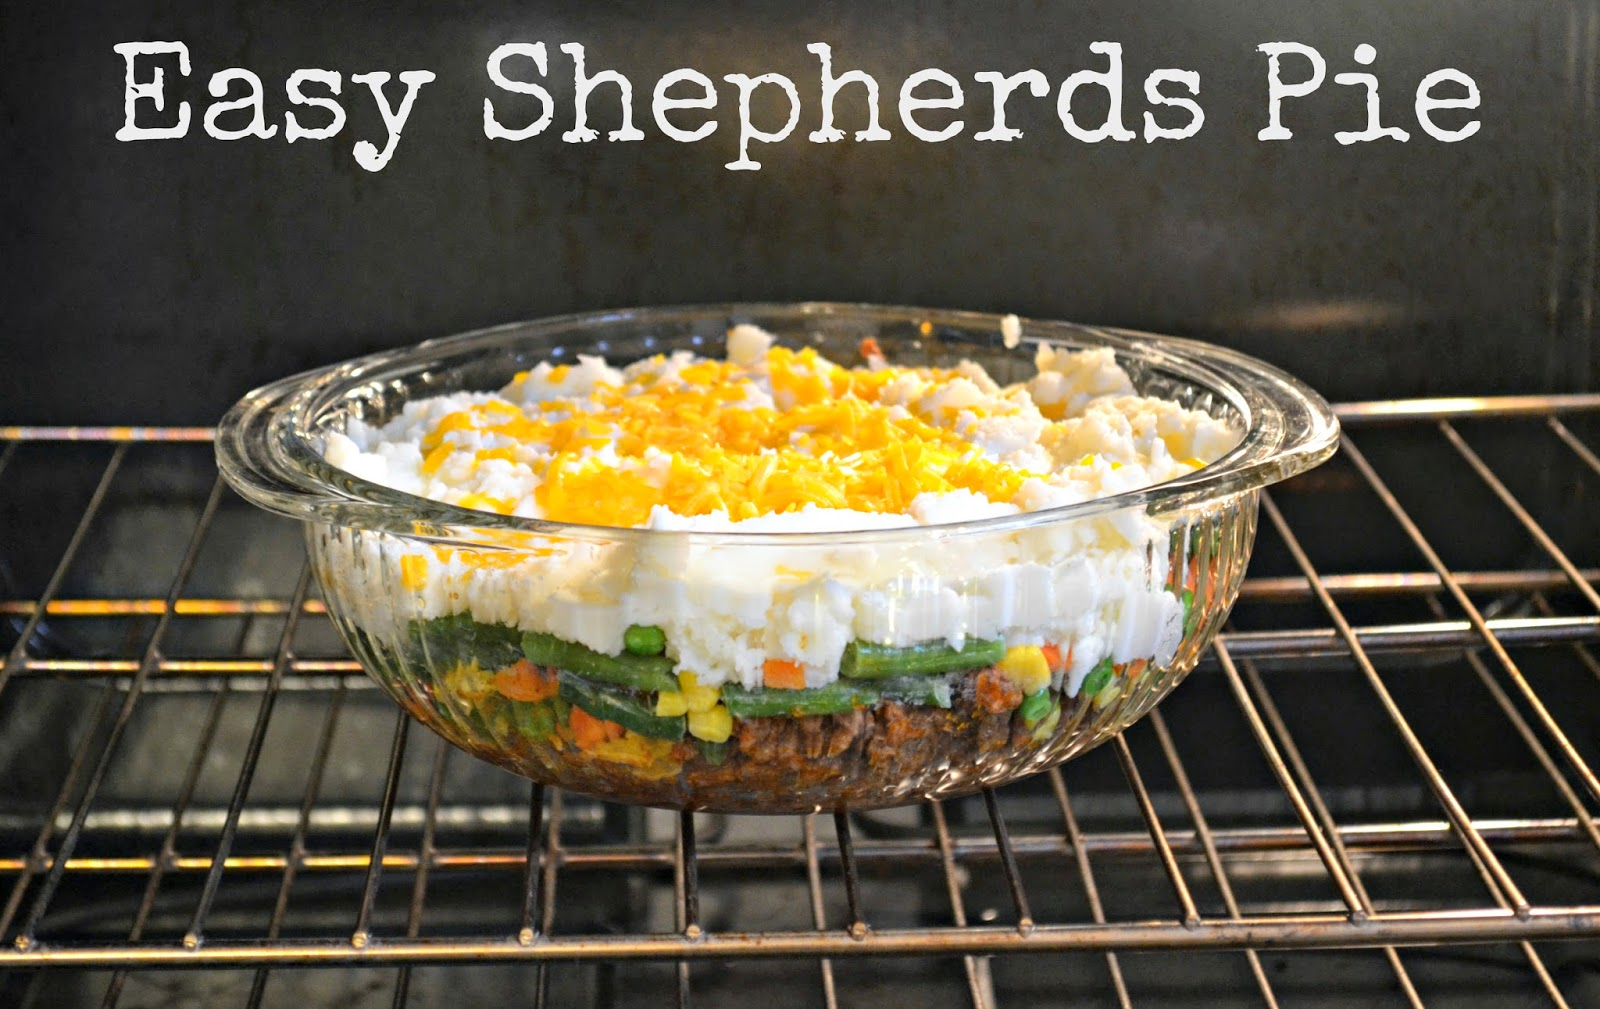 Easy Shepherds Pie #Recipe |Building Our Story